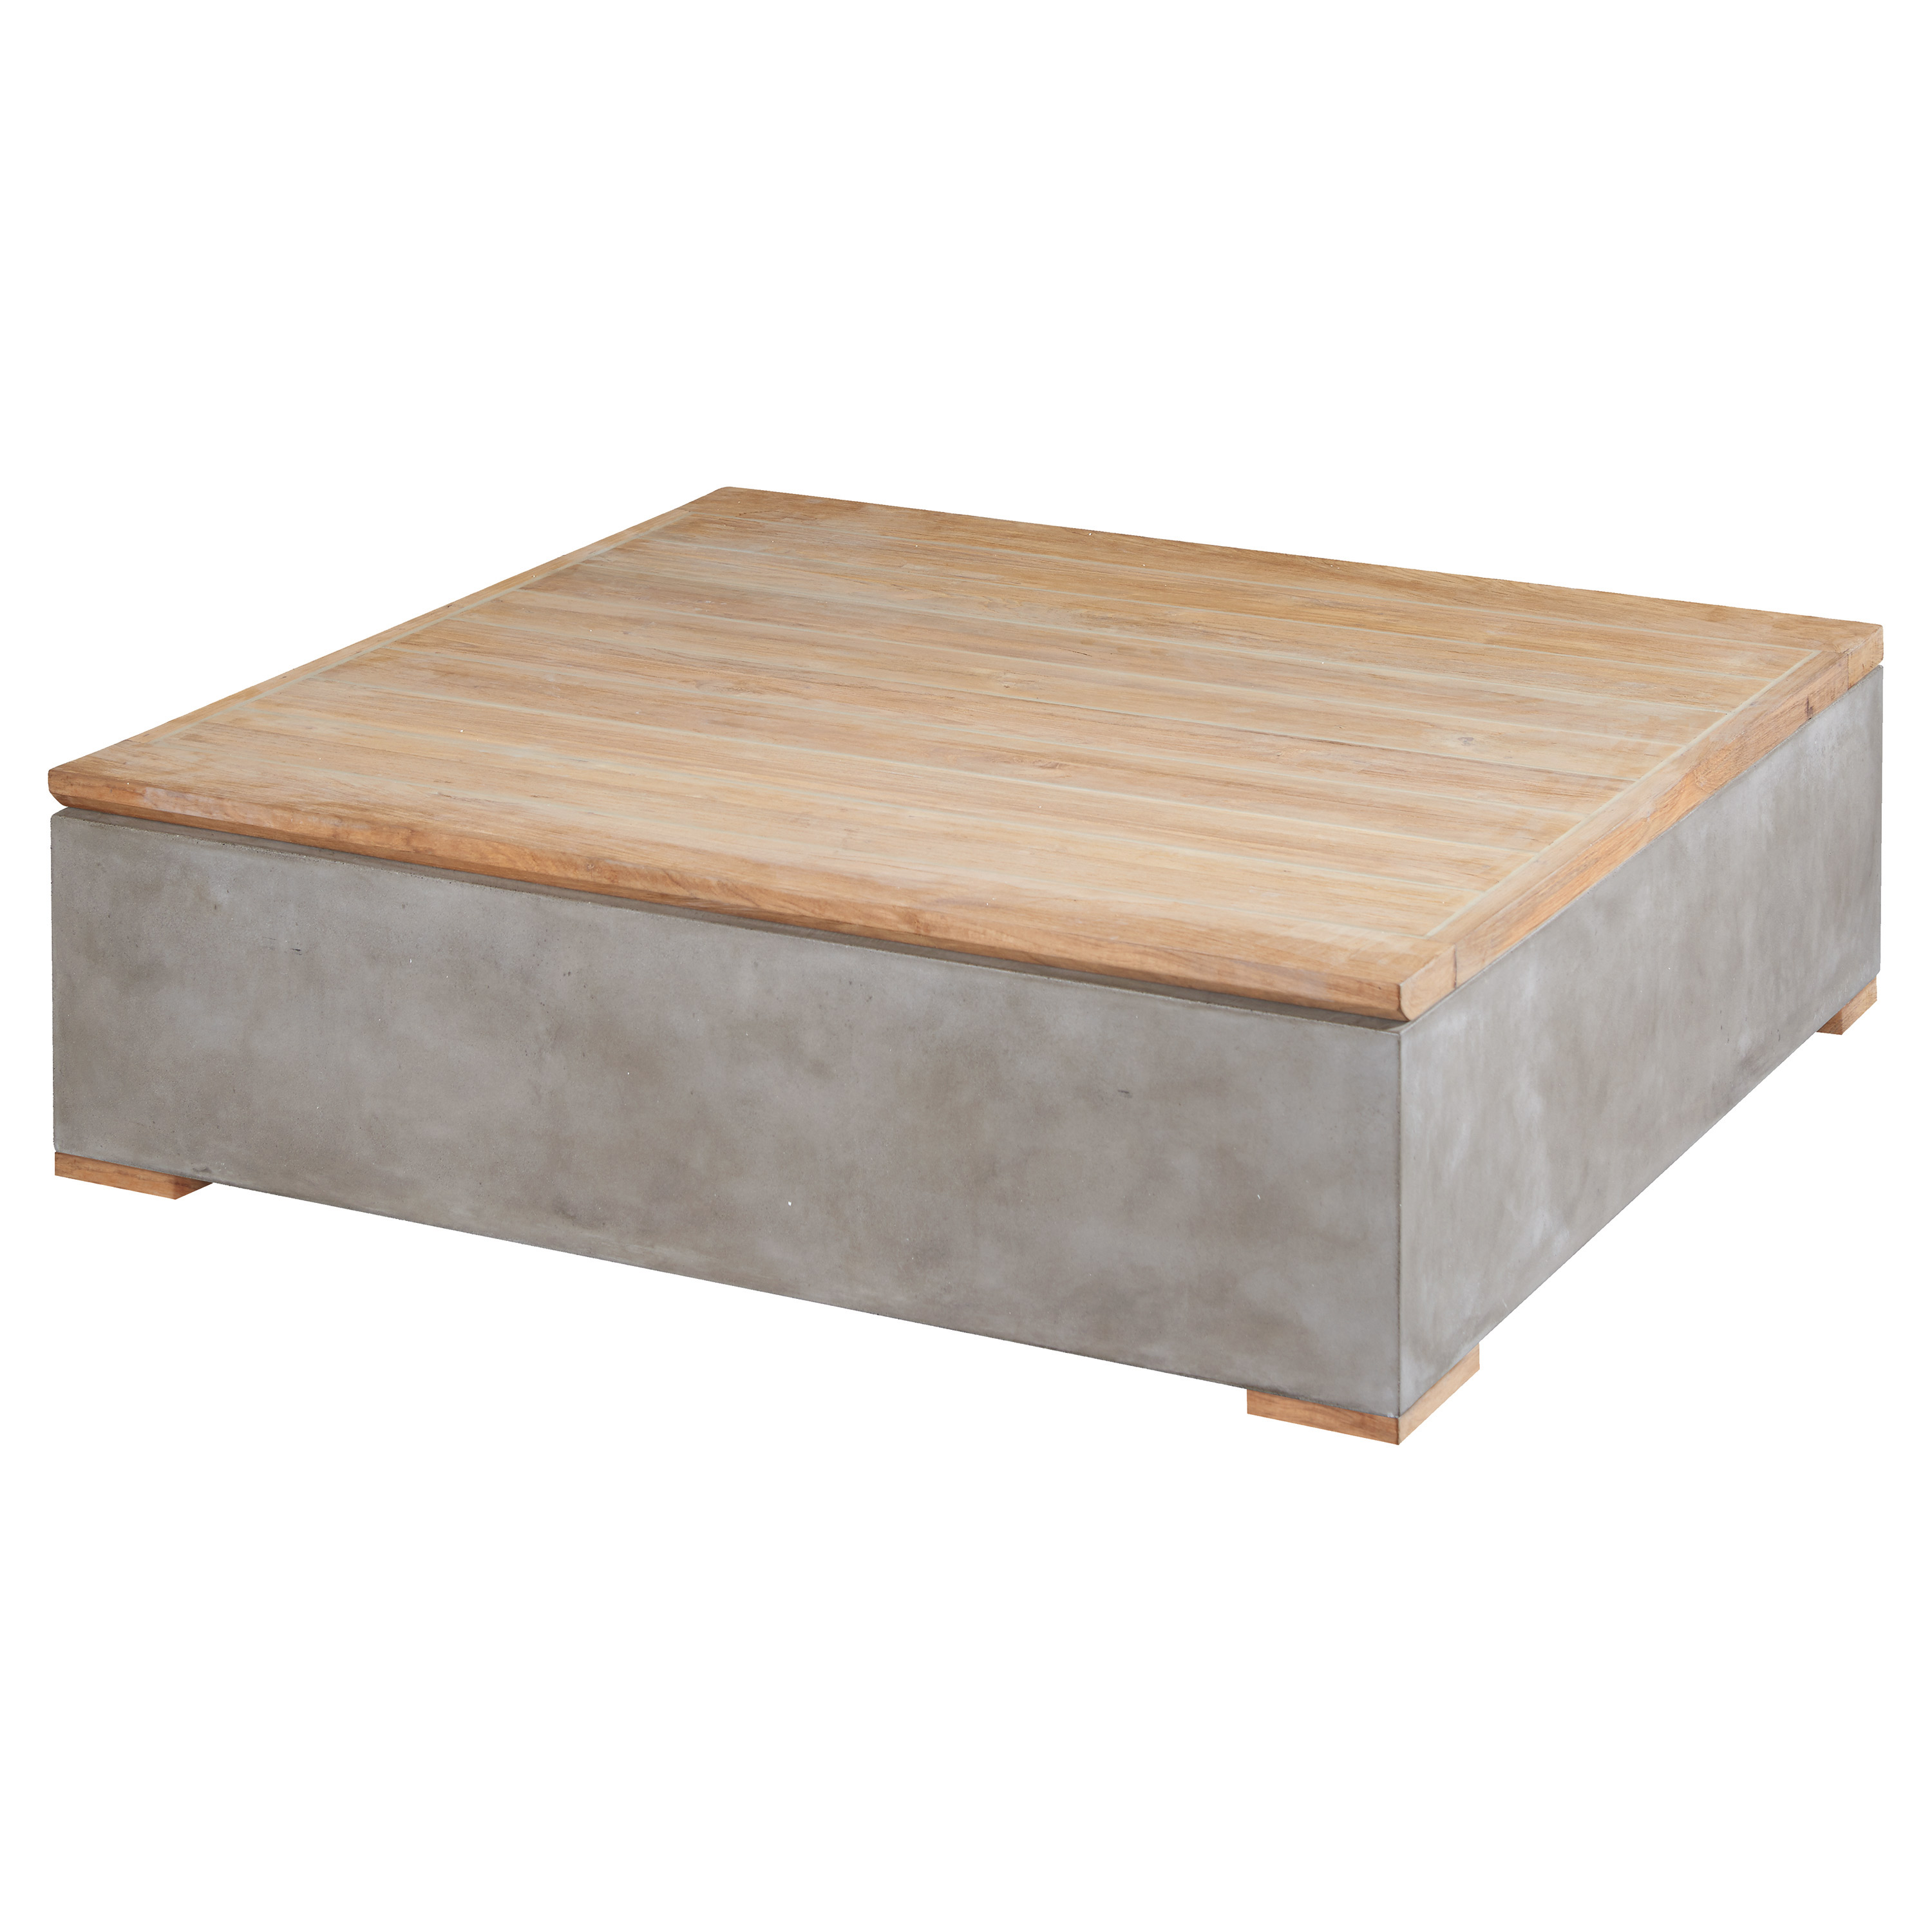 Ian Modern Square Wood Top Grey Concrete Base Outdoor Storage Coffee Table  sc 1 st  Kathy Kuo Home & Outdoor Coffee Tables | Kathy Kuo Home